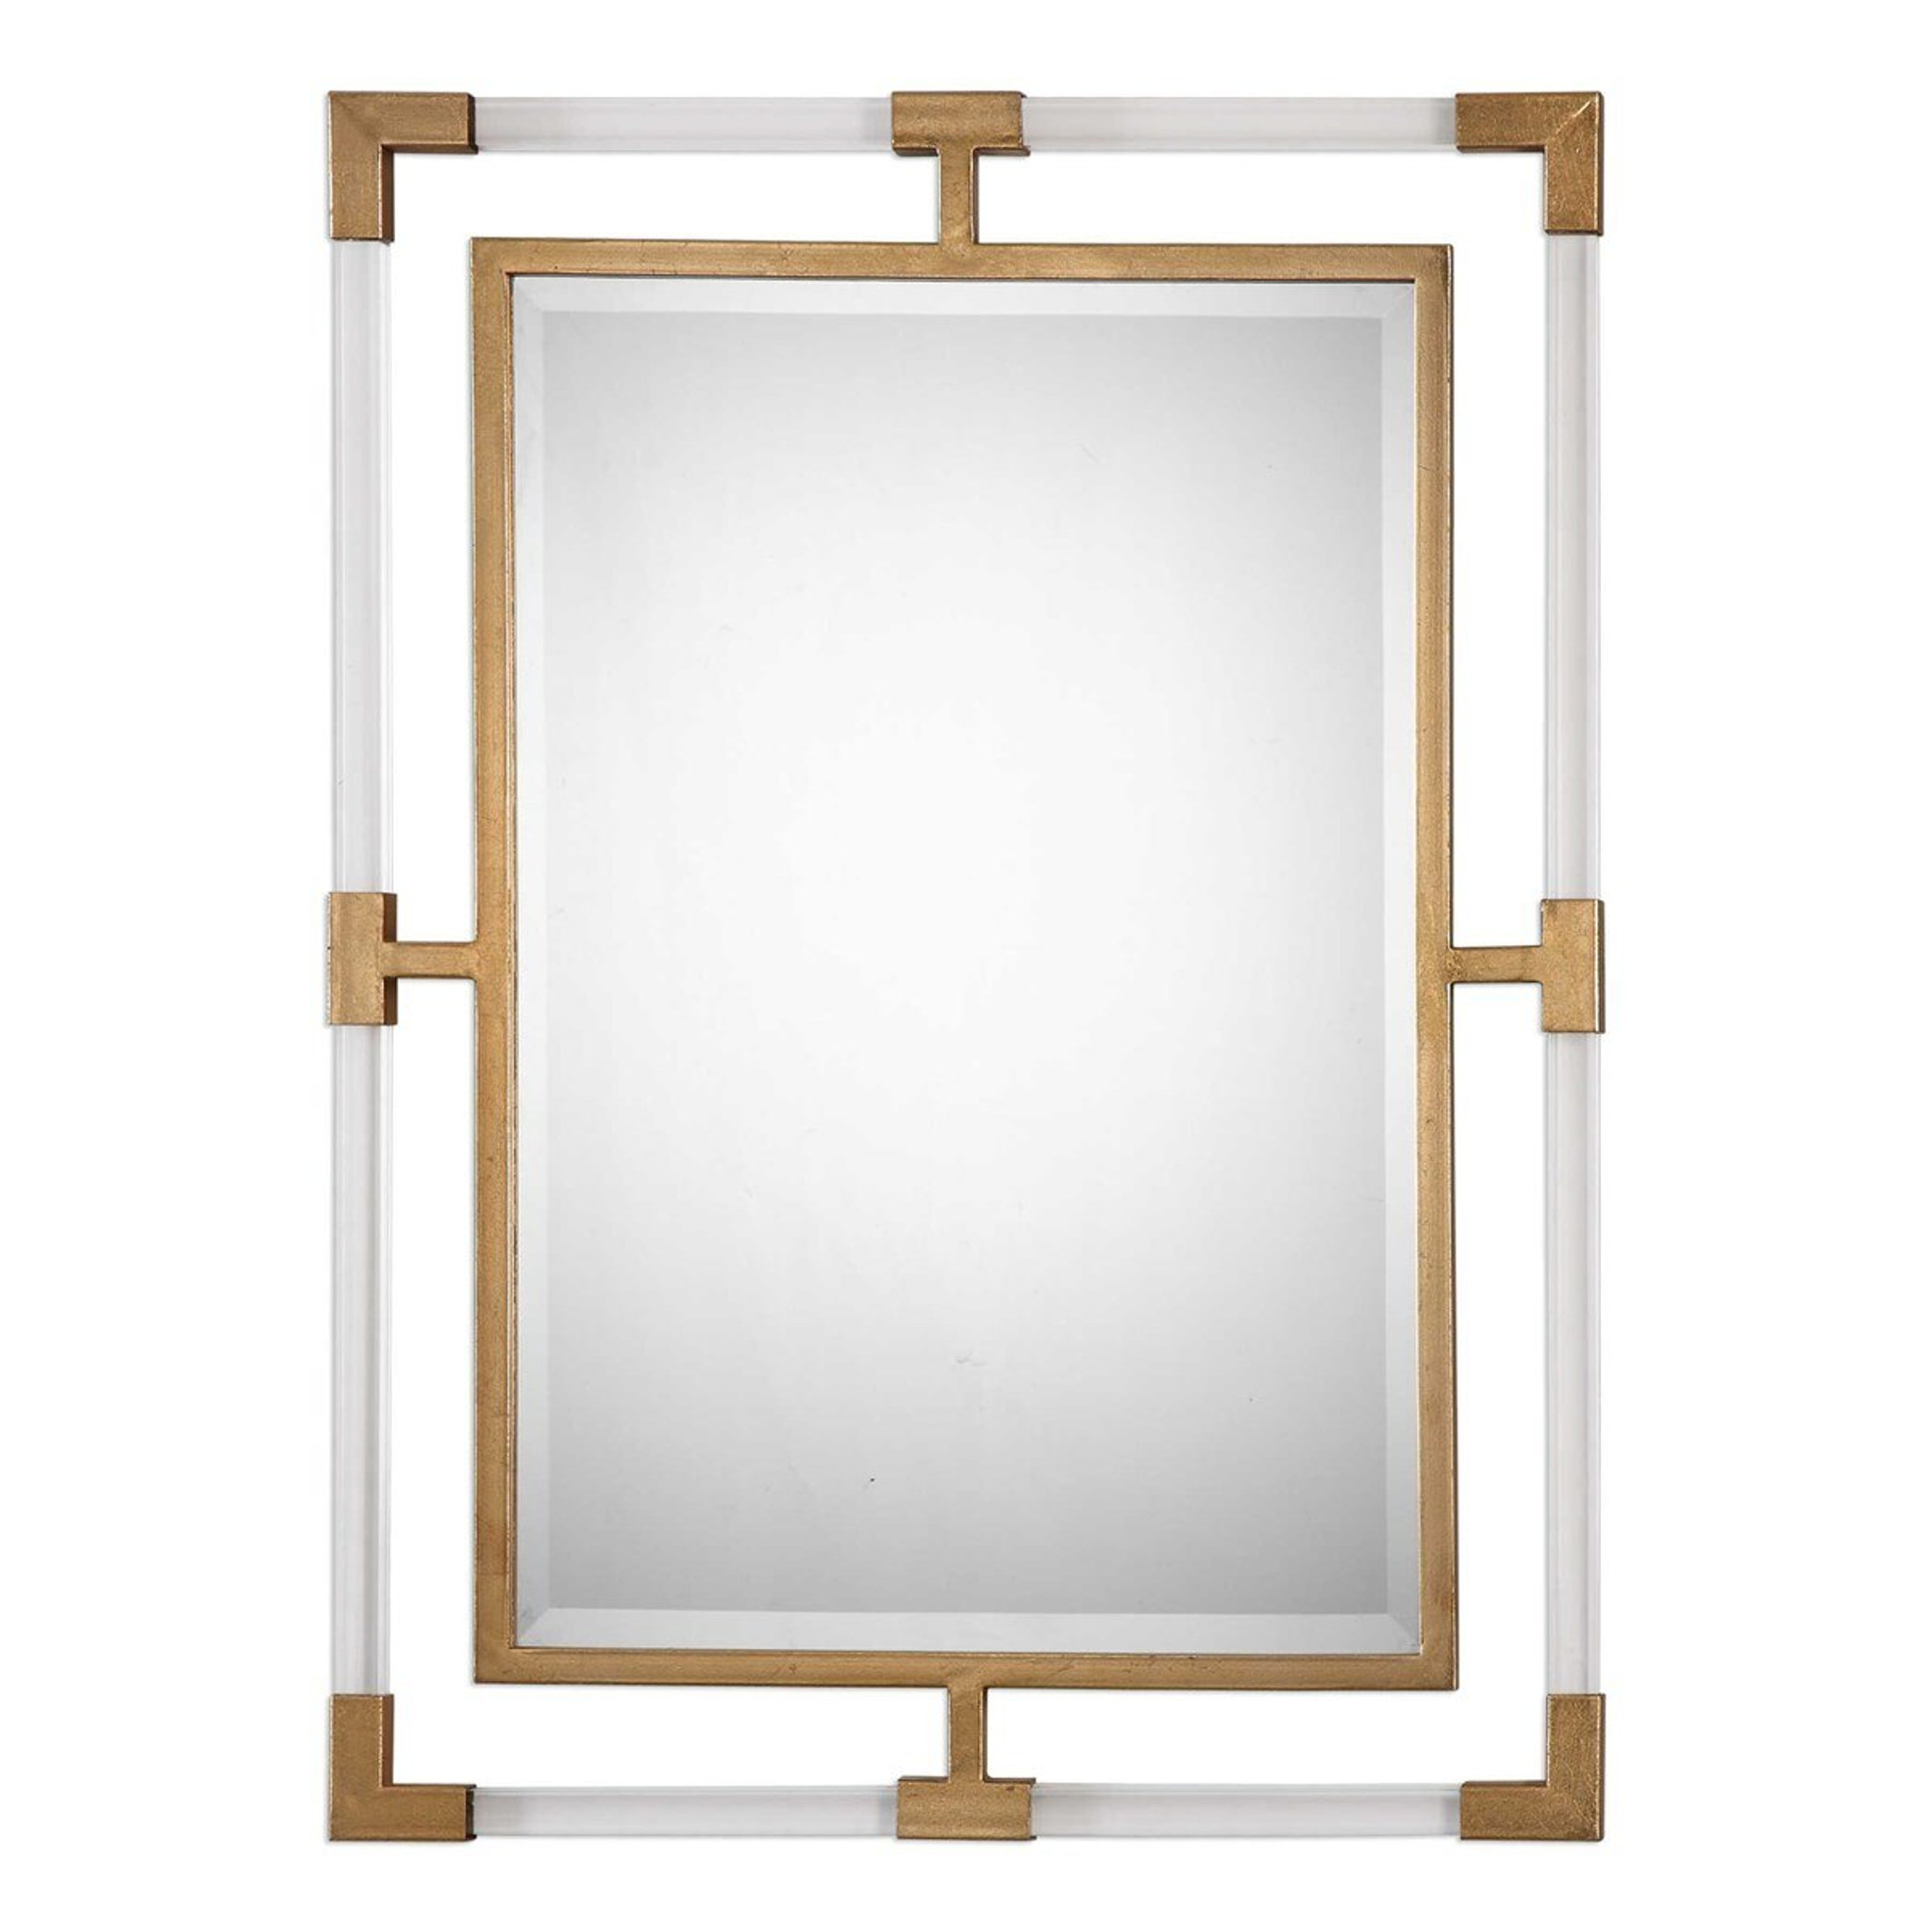 vintage lucite mirror lucite clear acrylic frame floating wall mirror uttermost balkan